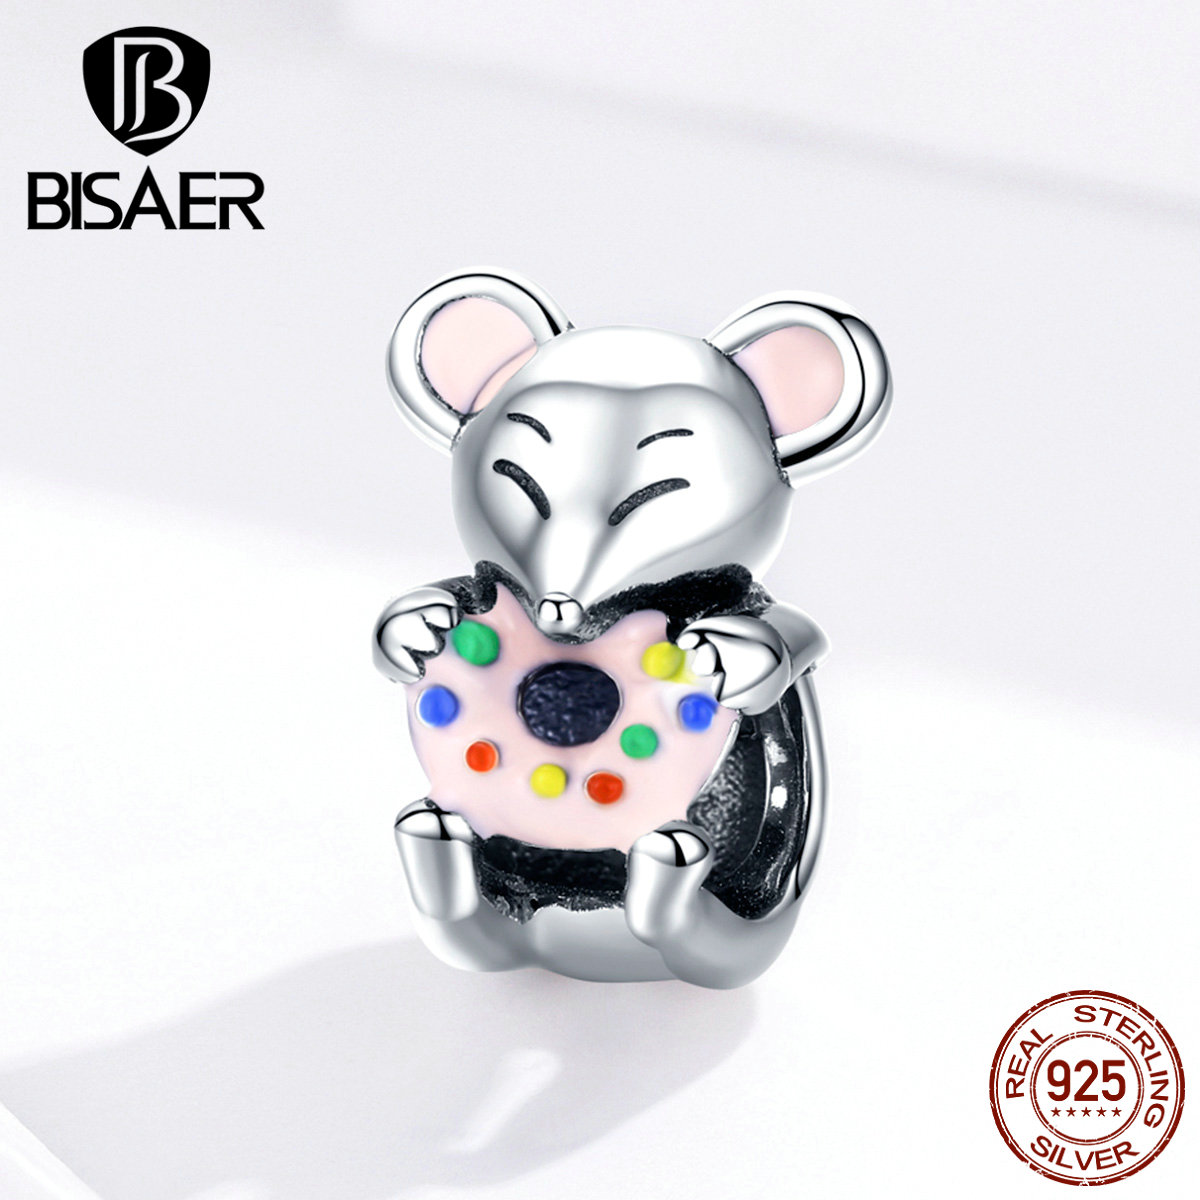 Animal Charms BISAER 925 Sterling Silver Little Mouse Rat Beads Charms Fit Women Bracelets Silver 925 Original Jewelry ECC1318